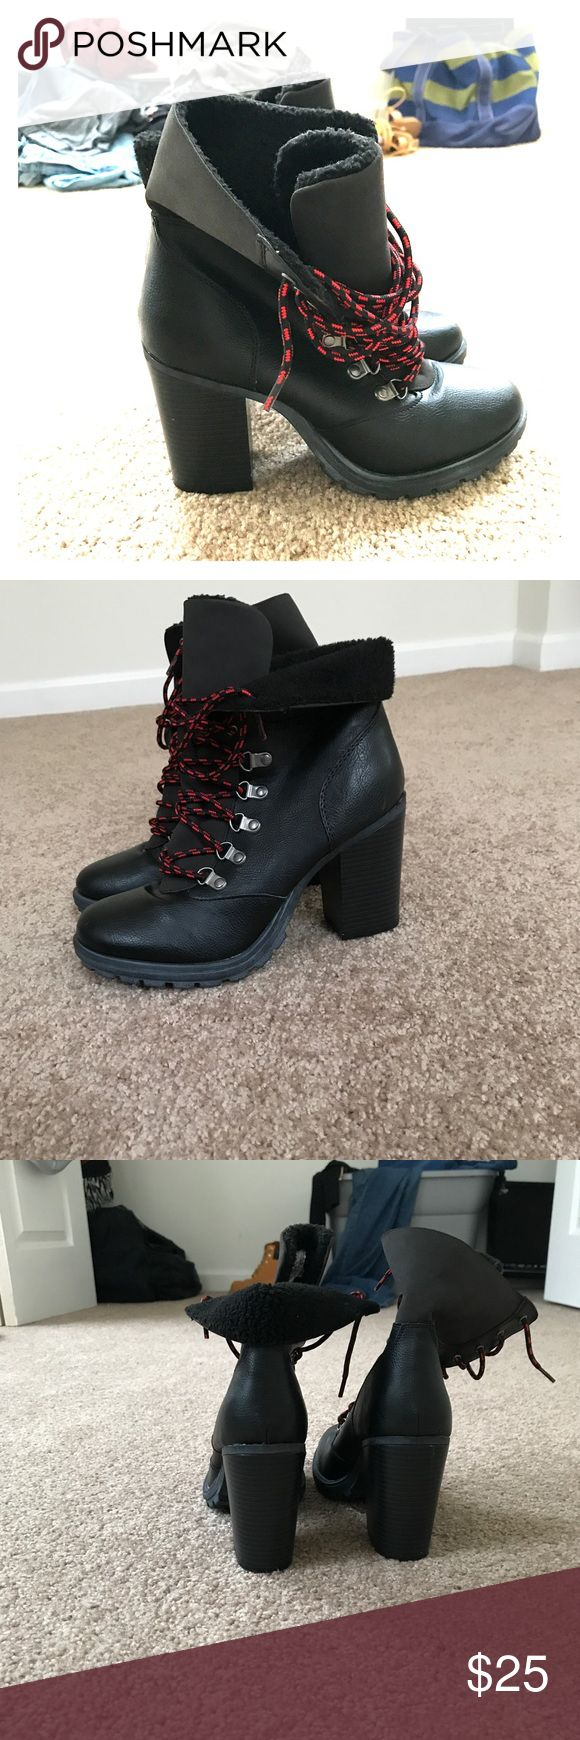 Shoe Dazzle Leather Black Booties Worn once in new condition, no marks or scuffs. Very stylish come from smoke and pet free home. Shoe Dazzle Shoes Ankle Boots & Booties